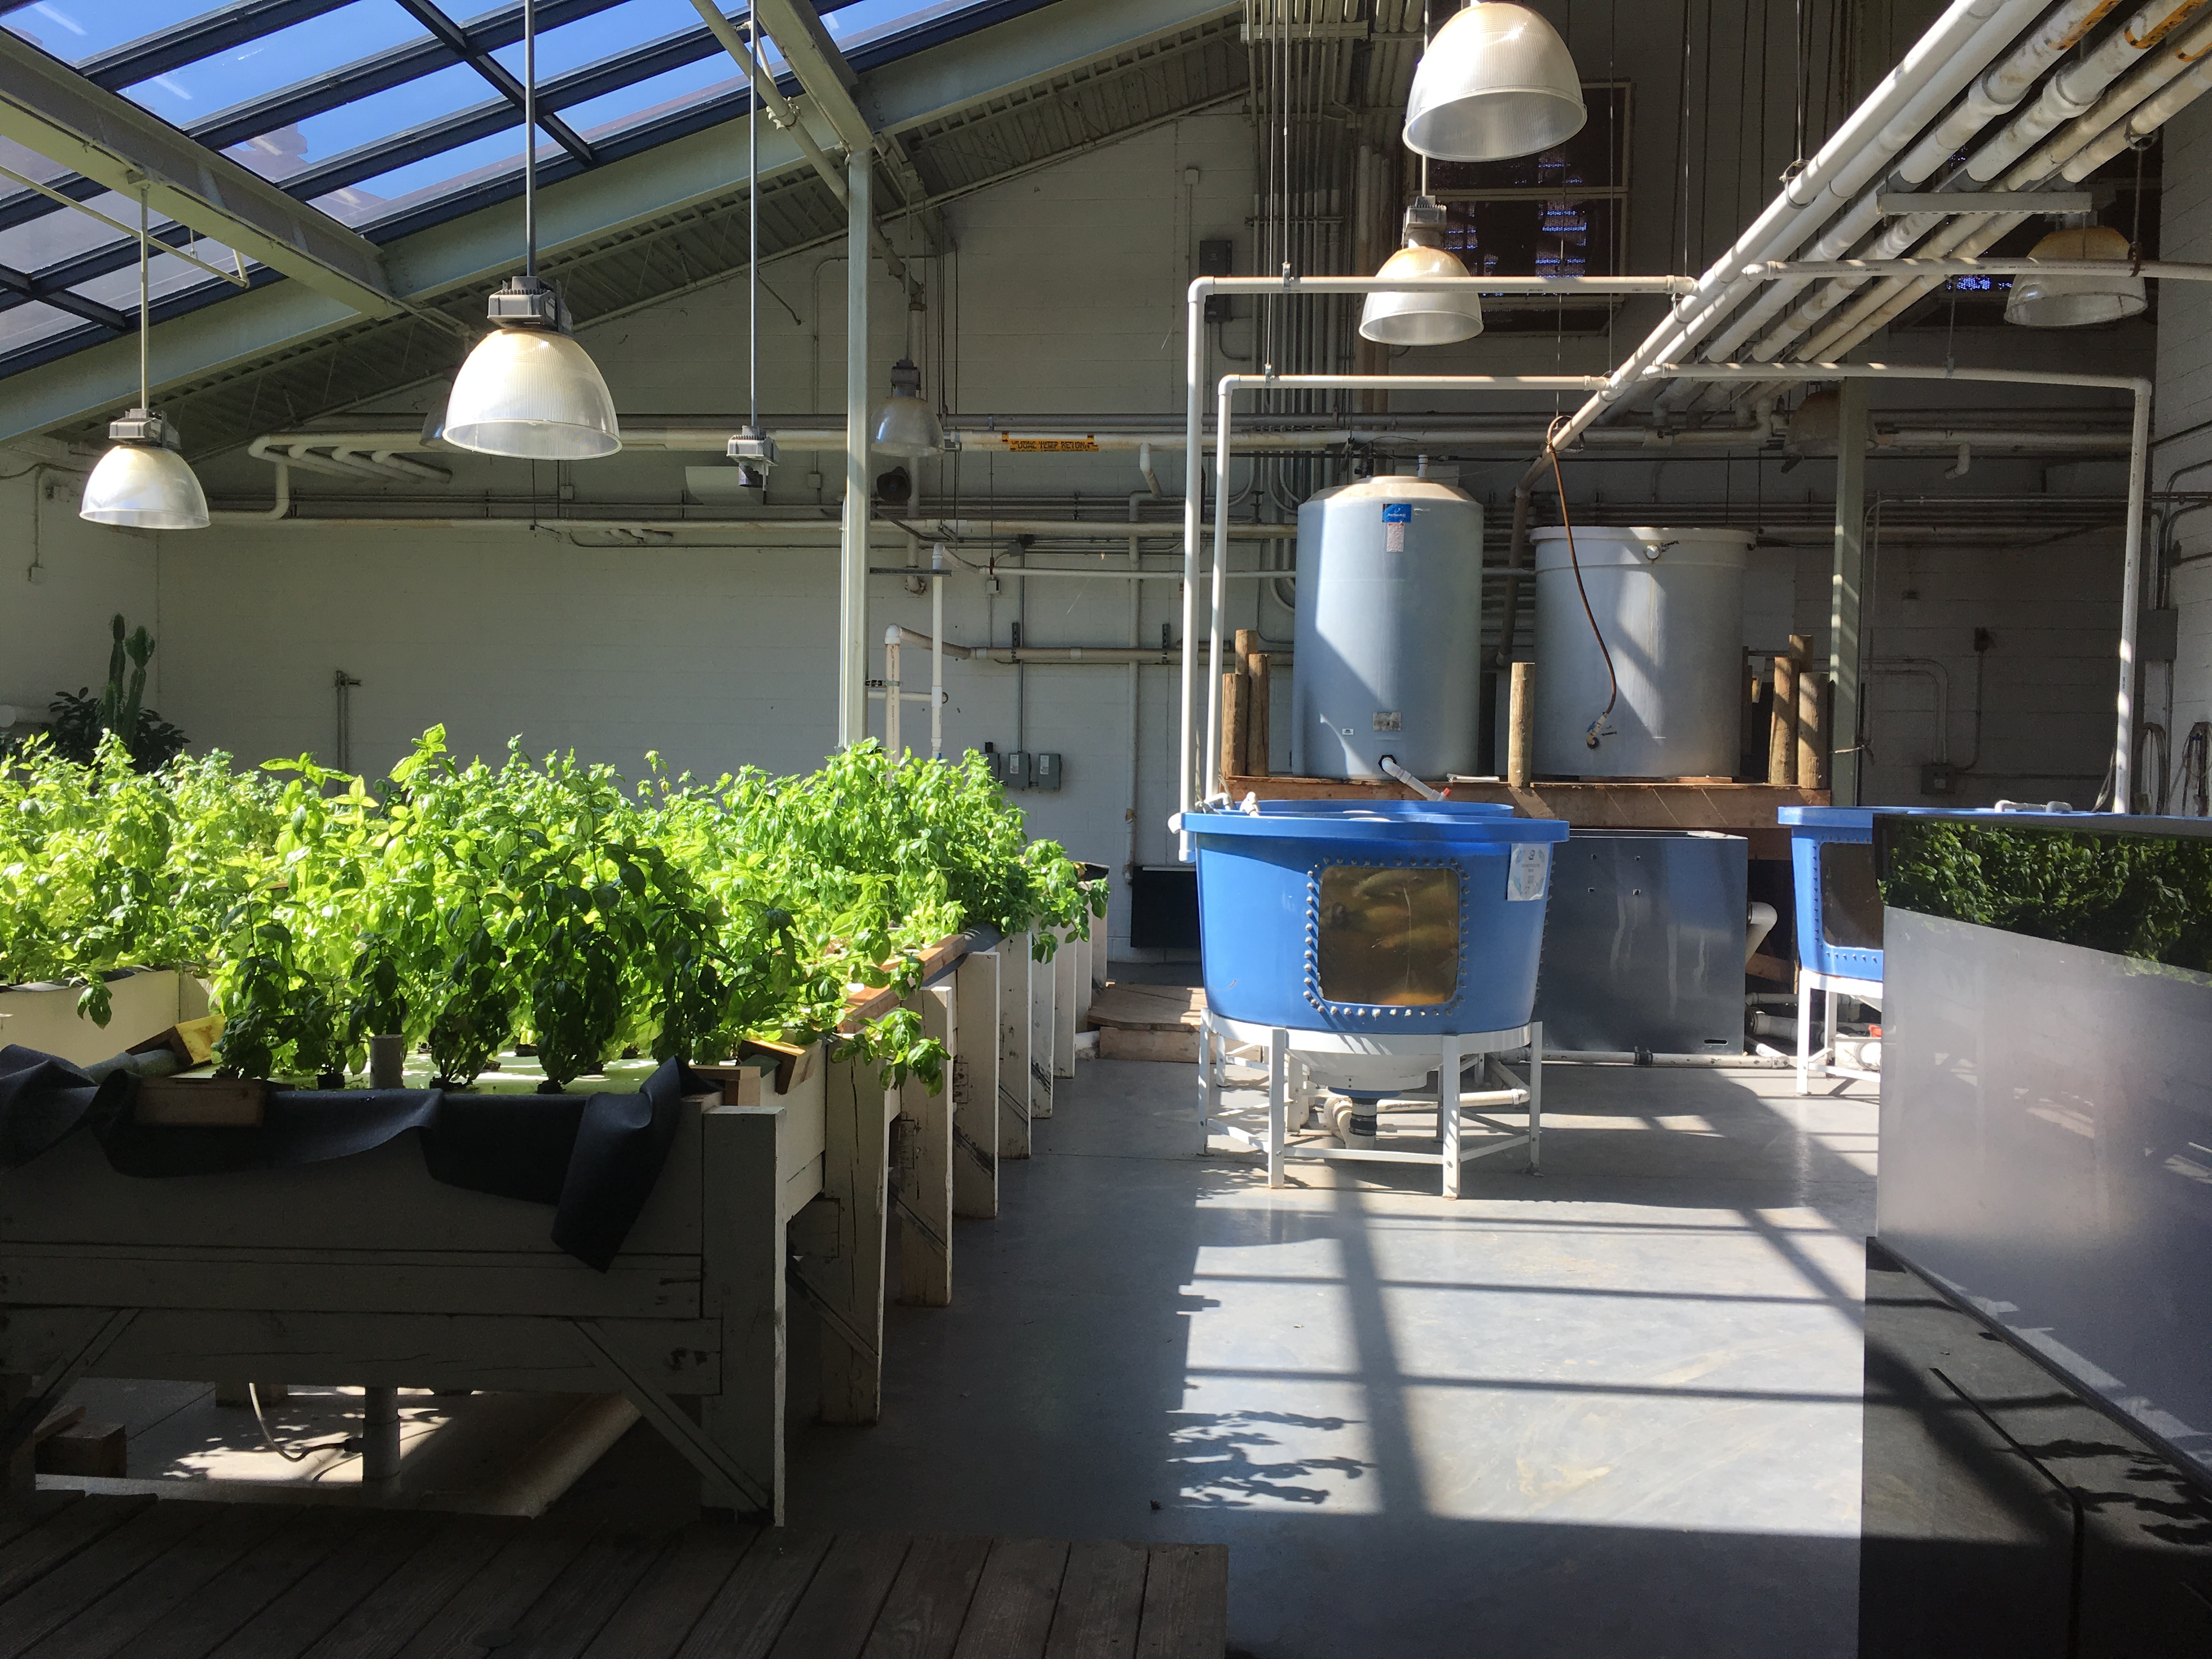 Chicago High School for Agricultural Sciences